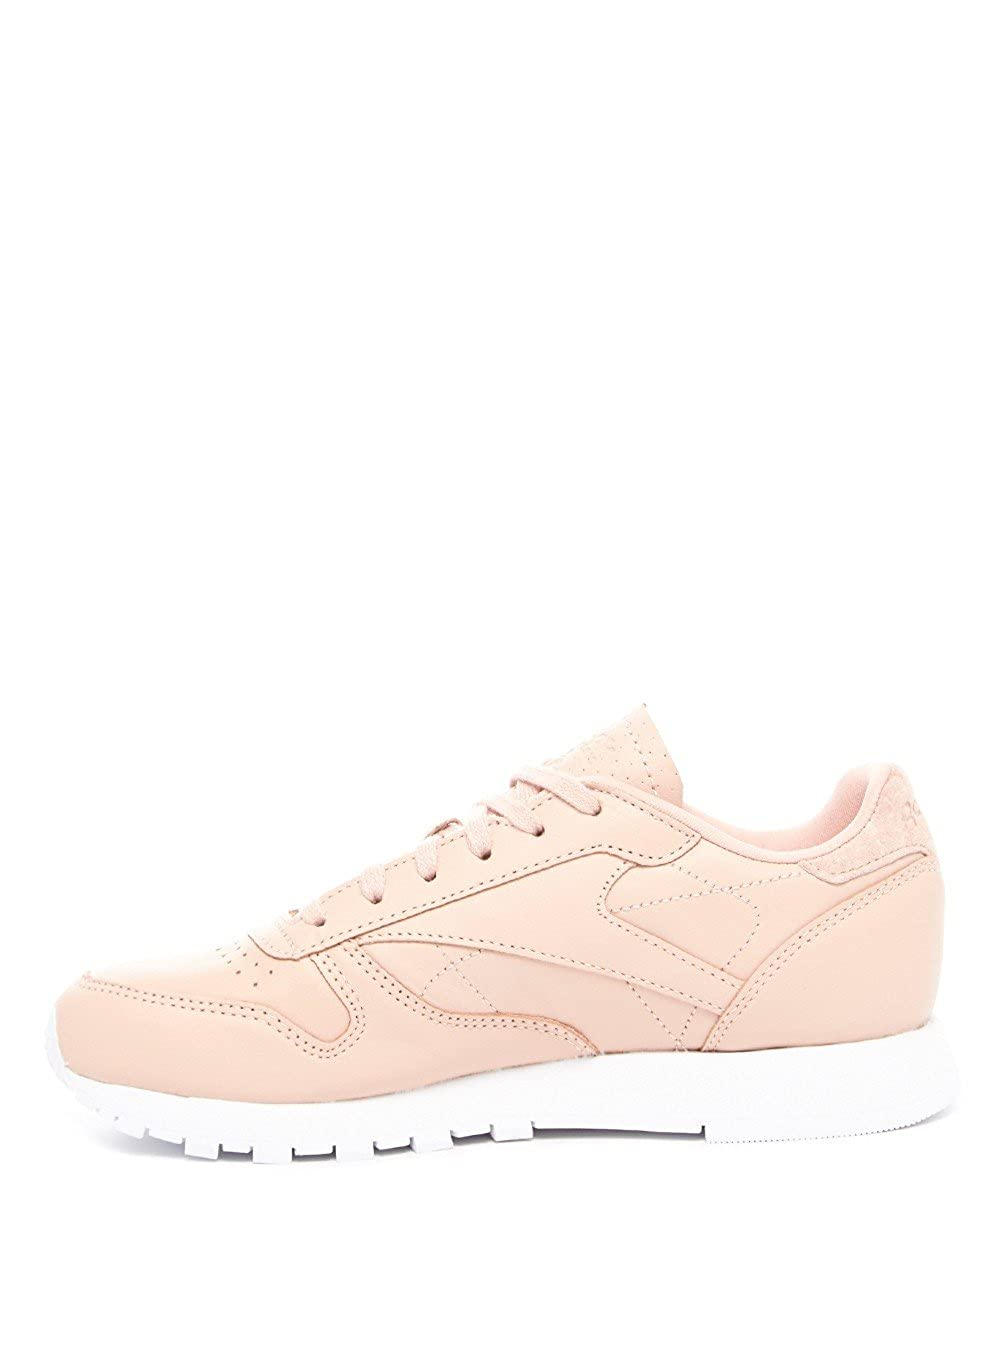 c91a8e2e3cdbf Reebok Classic Leather NT BD1181 Womens Pink Shoes Size  3.5 UK   Amazon.co.uk  Shoes   Bags